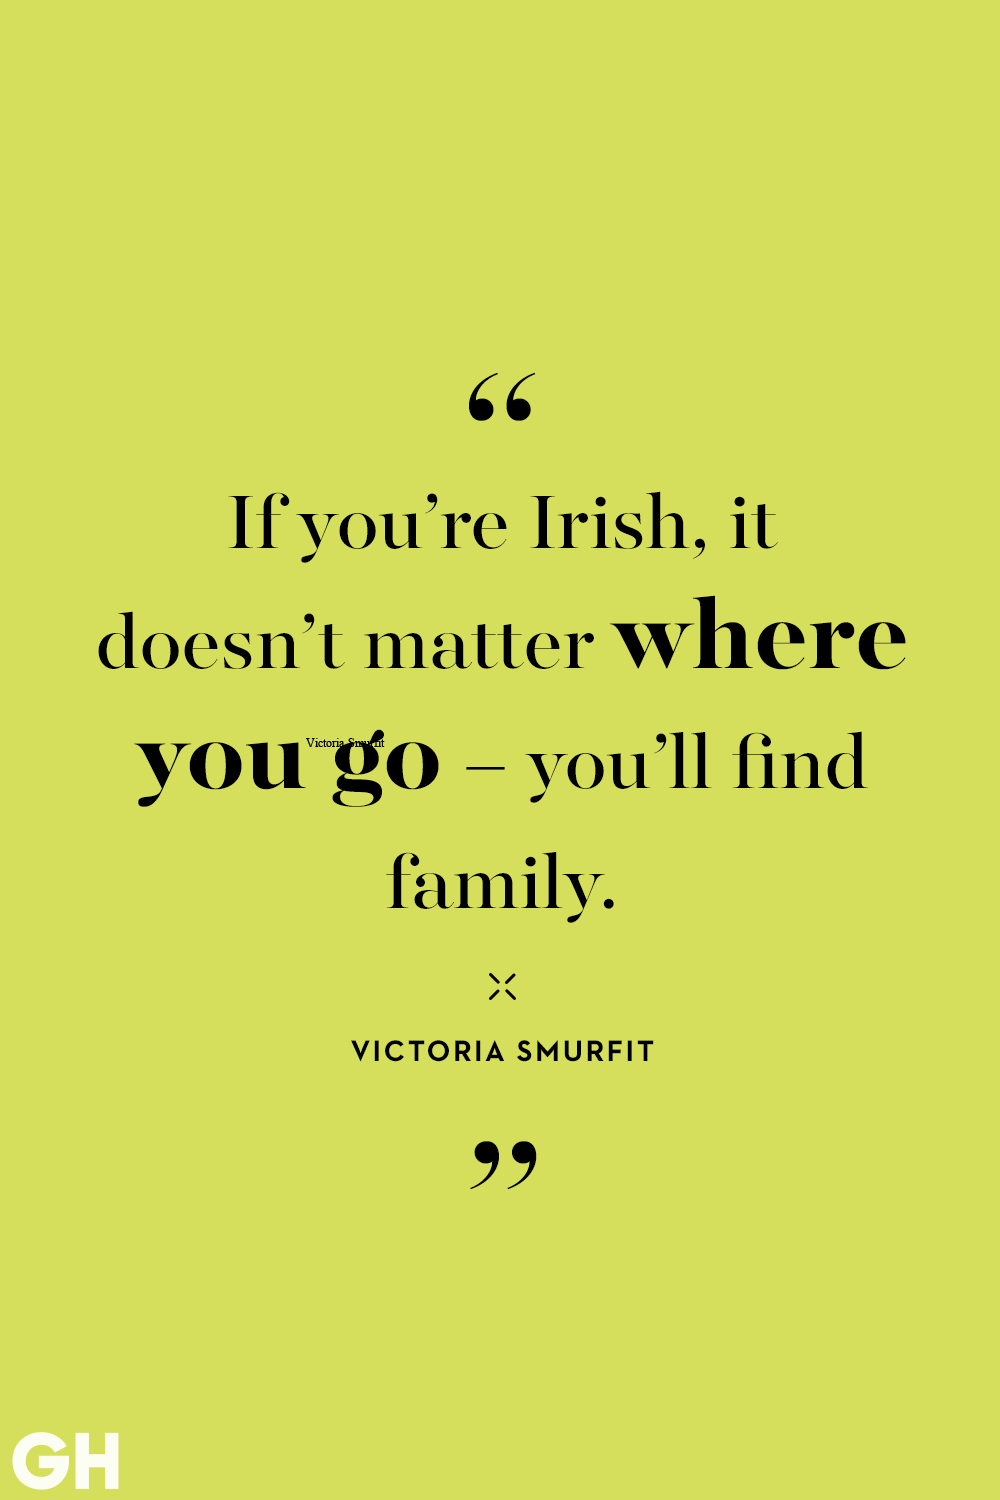 20 St  Patrick's Day Quotes - Best Irish Sayings for St  Paddy's Day